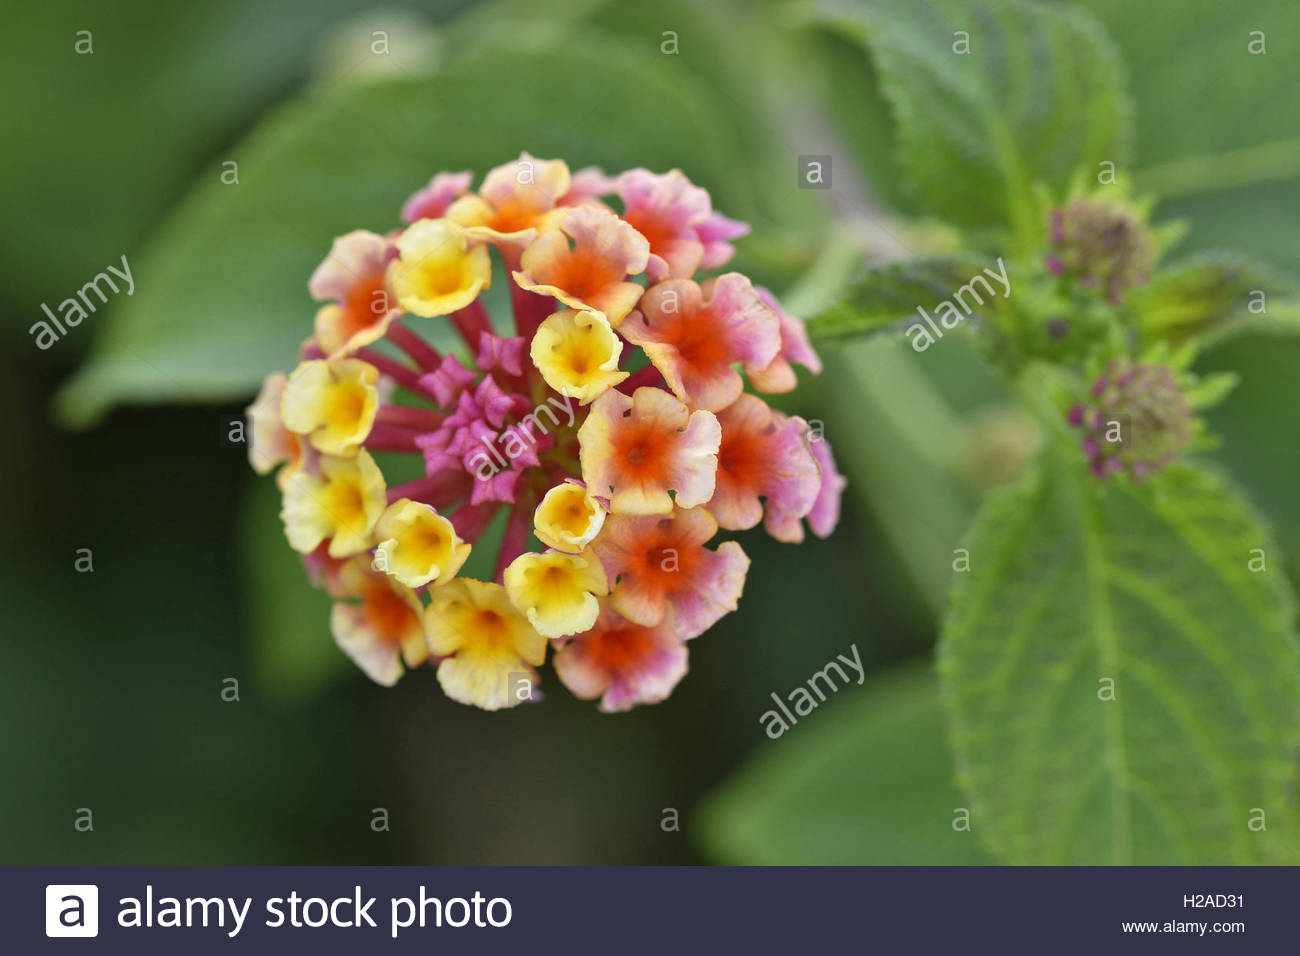 Lantana flower (Lantana camara) close-up, Algarve Portugal Europe. Stock Photo